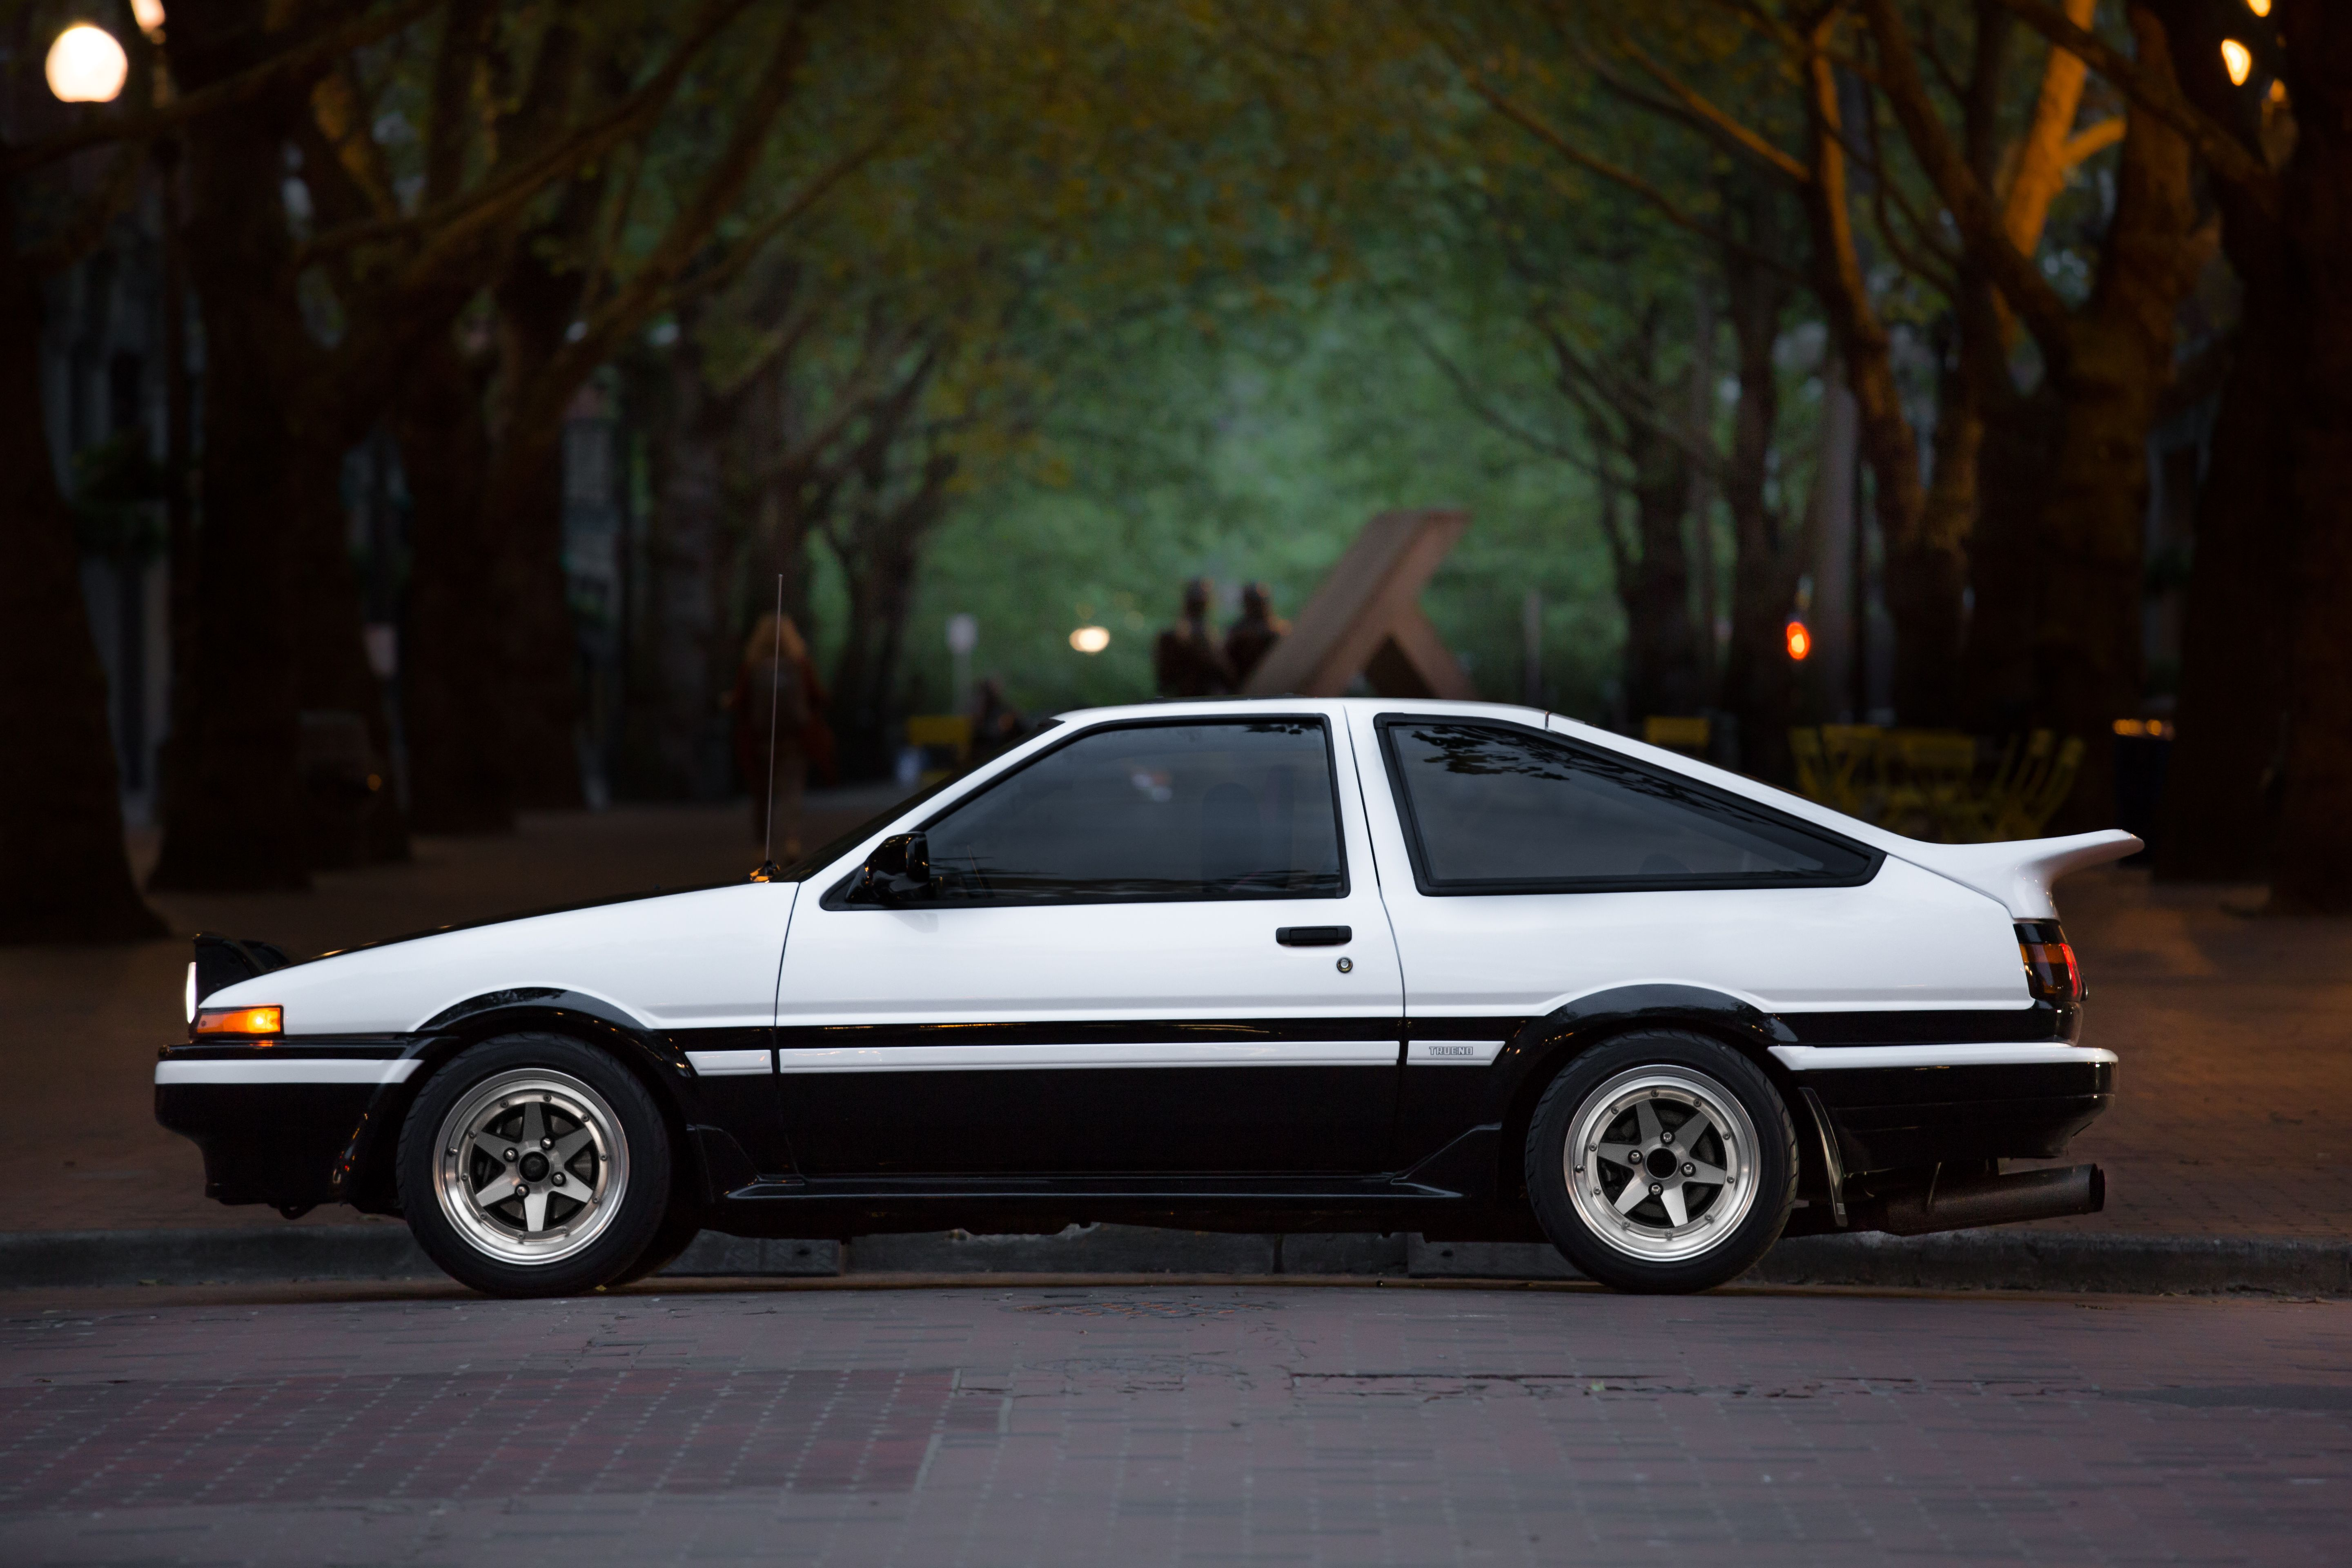 Your Ridiculously Awesome Toyota Ae86 Wallpaper Is Here Ae86 Toyota Automotive News